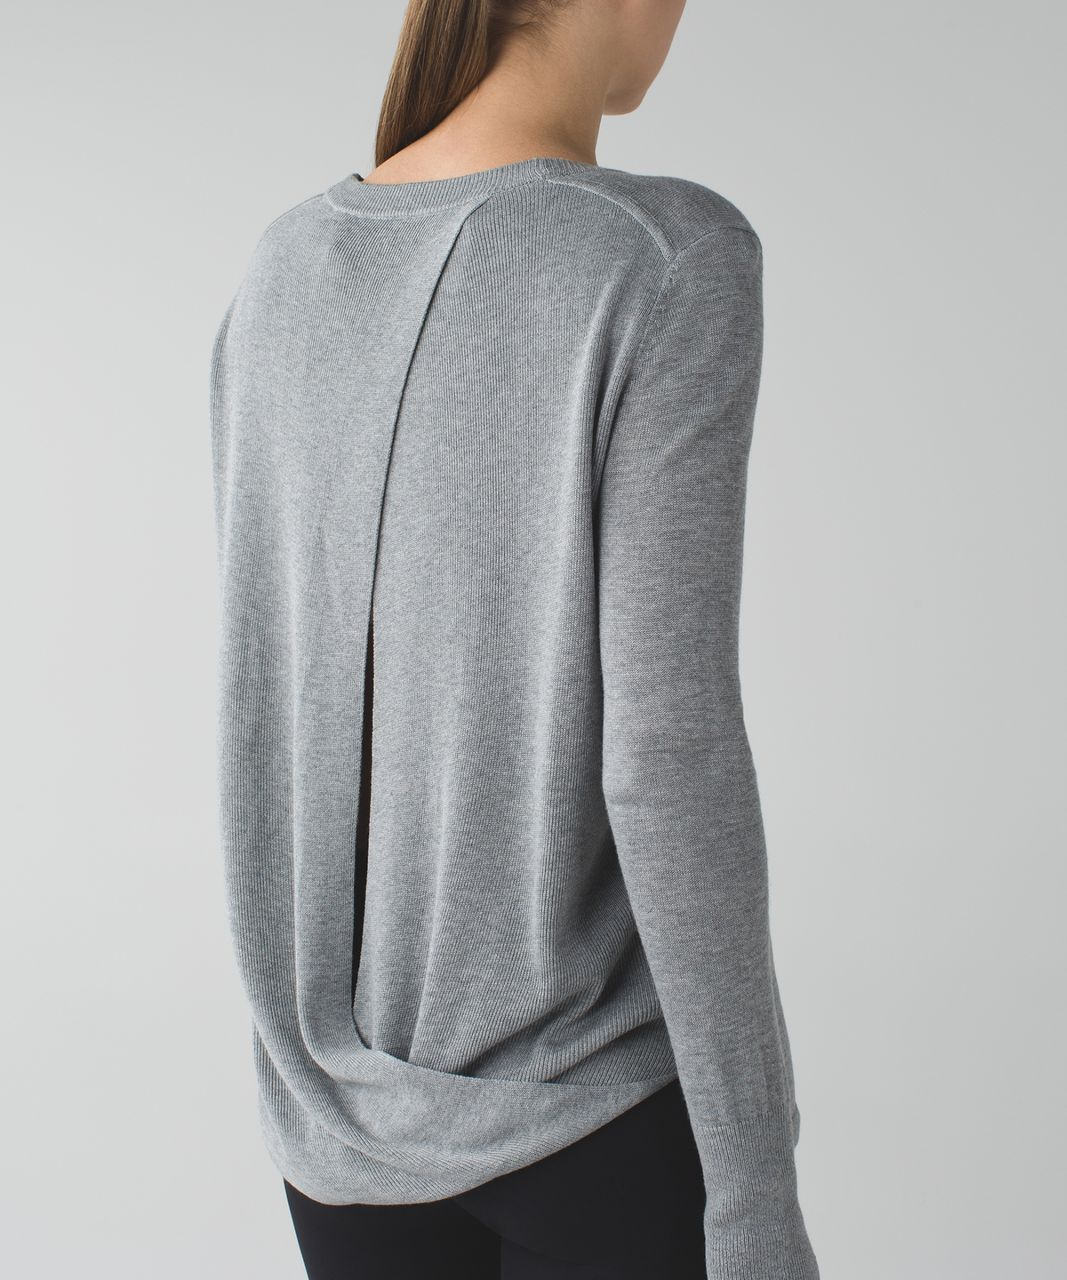 Lululemon Bring It Backbend Sweater - Heathered Medium Grey